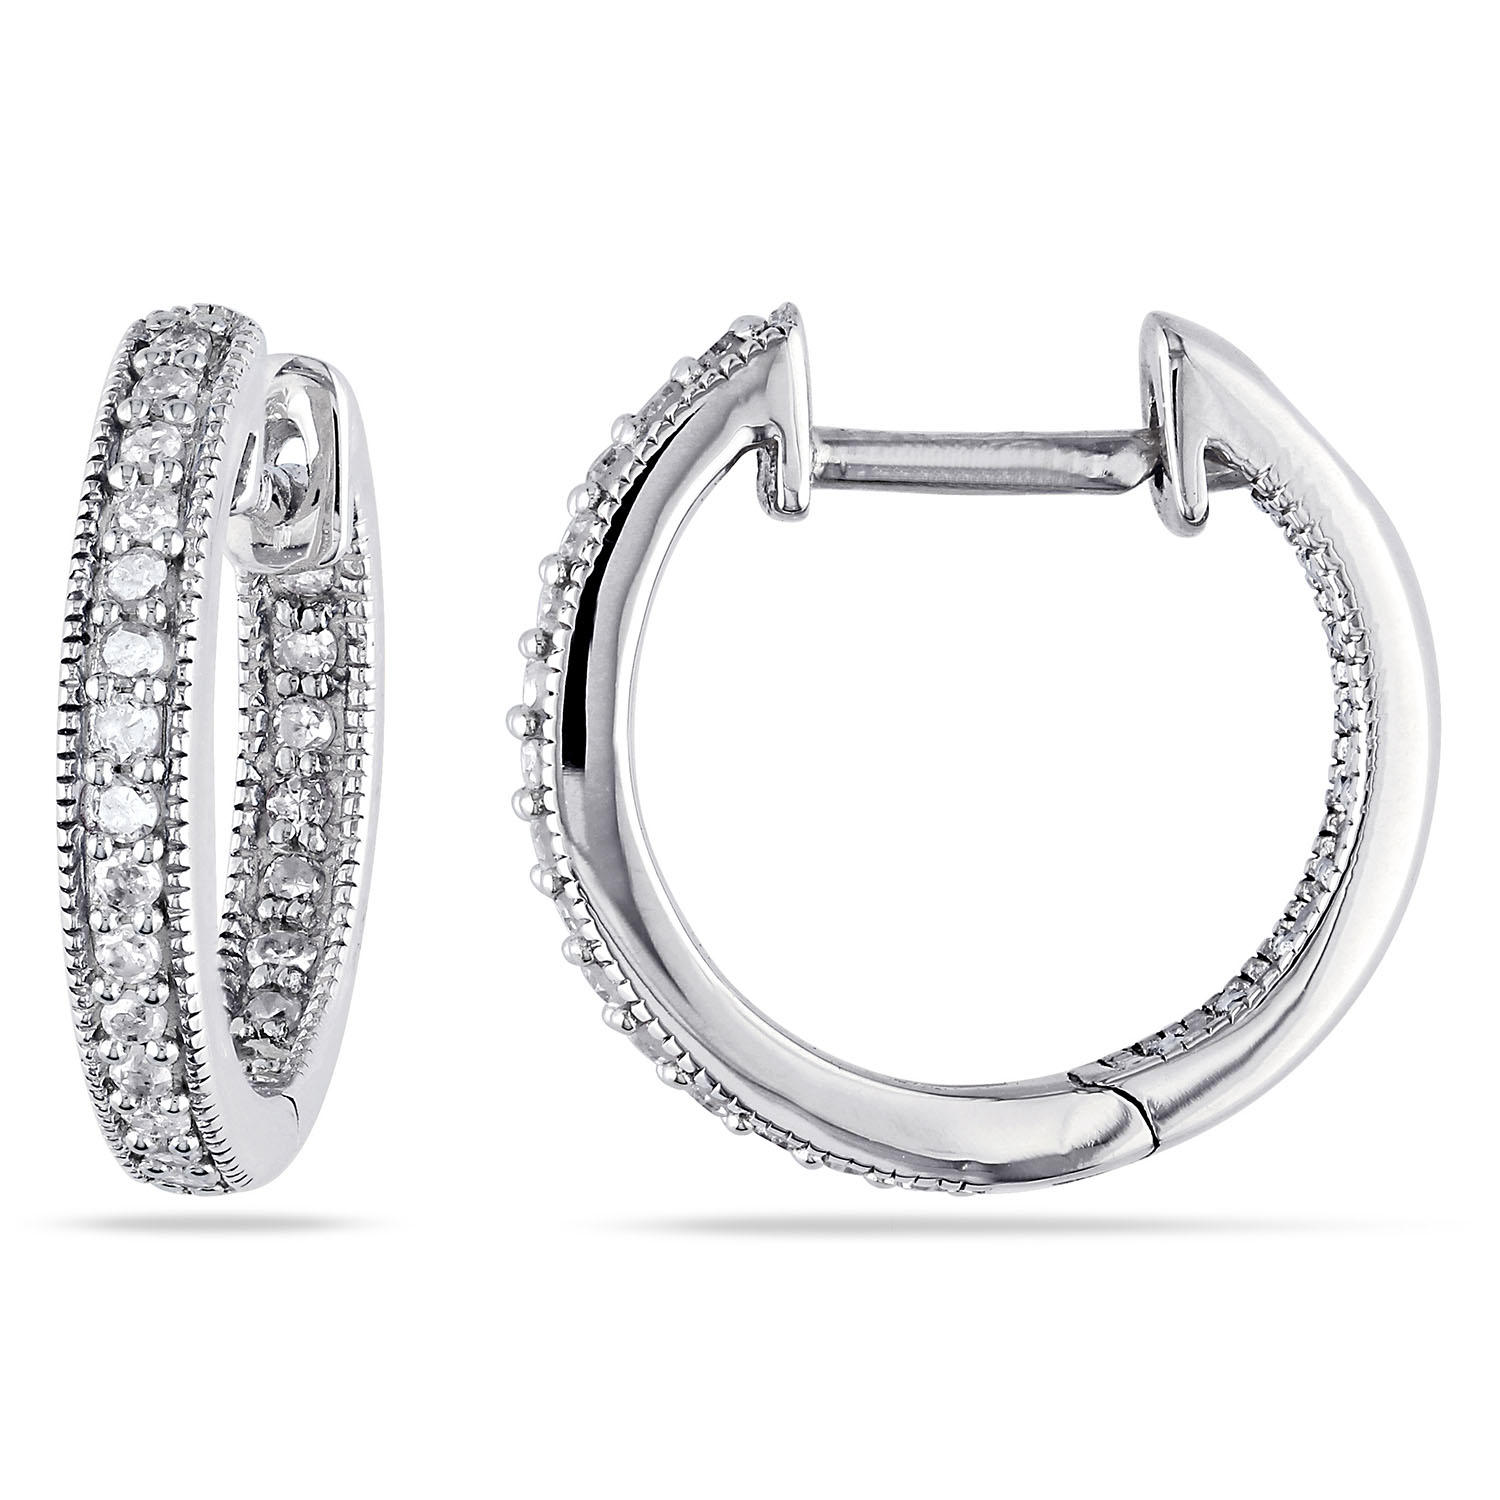 T.W. Inside Outside Diamond Hoop Earrings in 14K Gold (0.23 CT.)